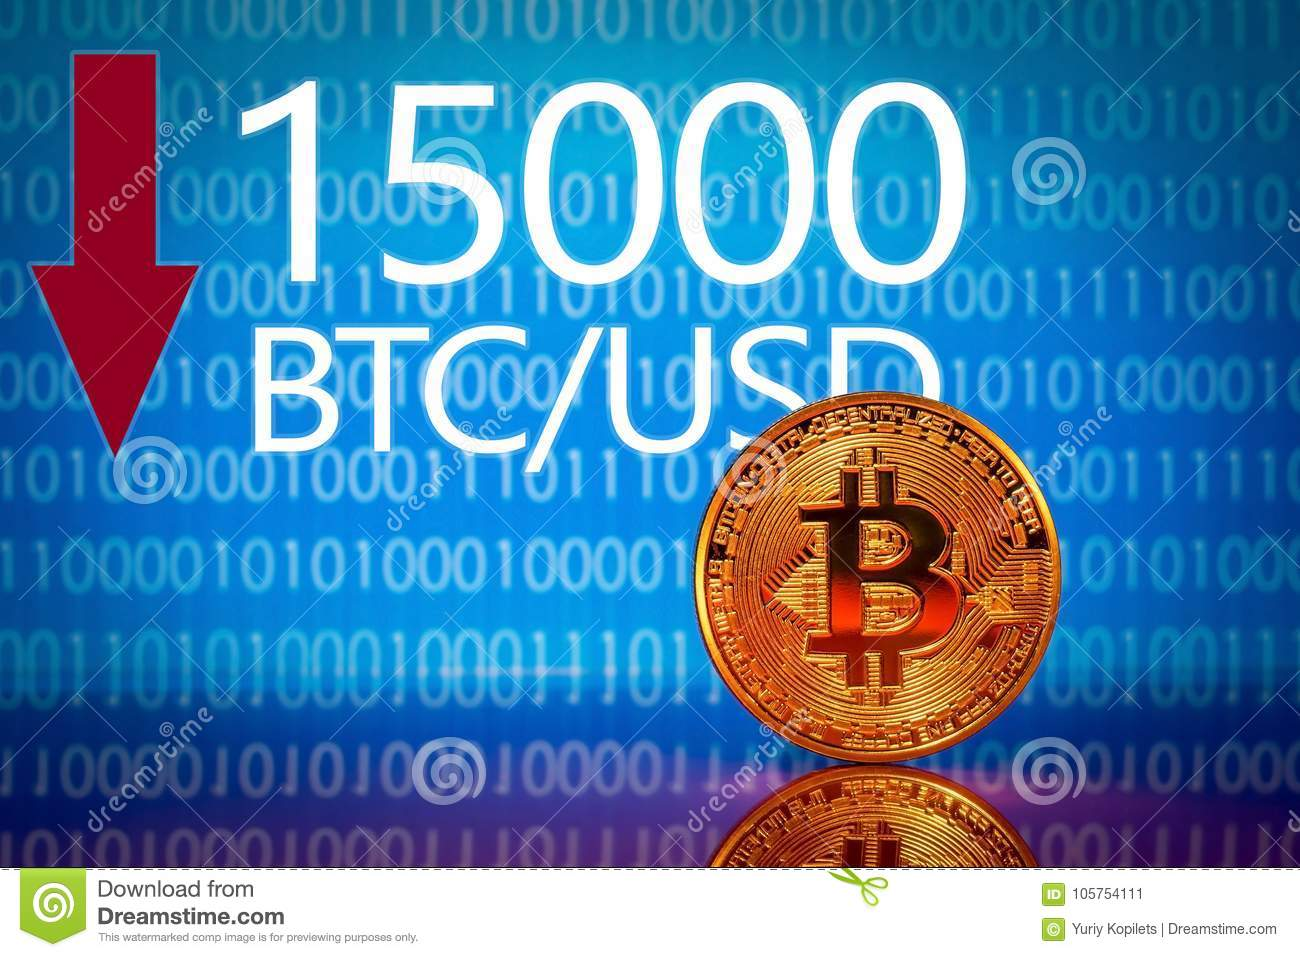 Bitcoin  Market Bitcoin Price - Fifteen Thousand 15000 US Dollars